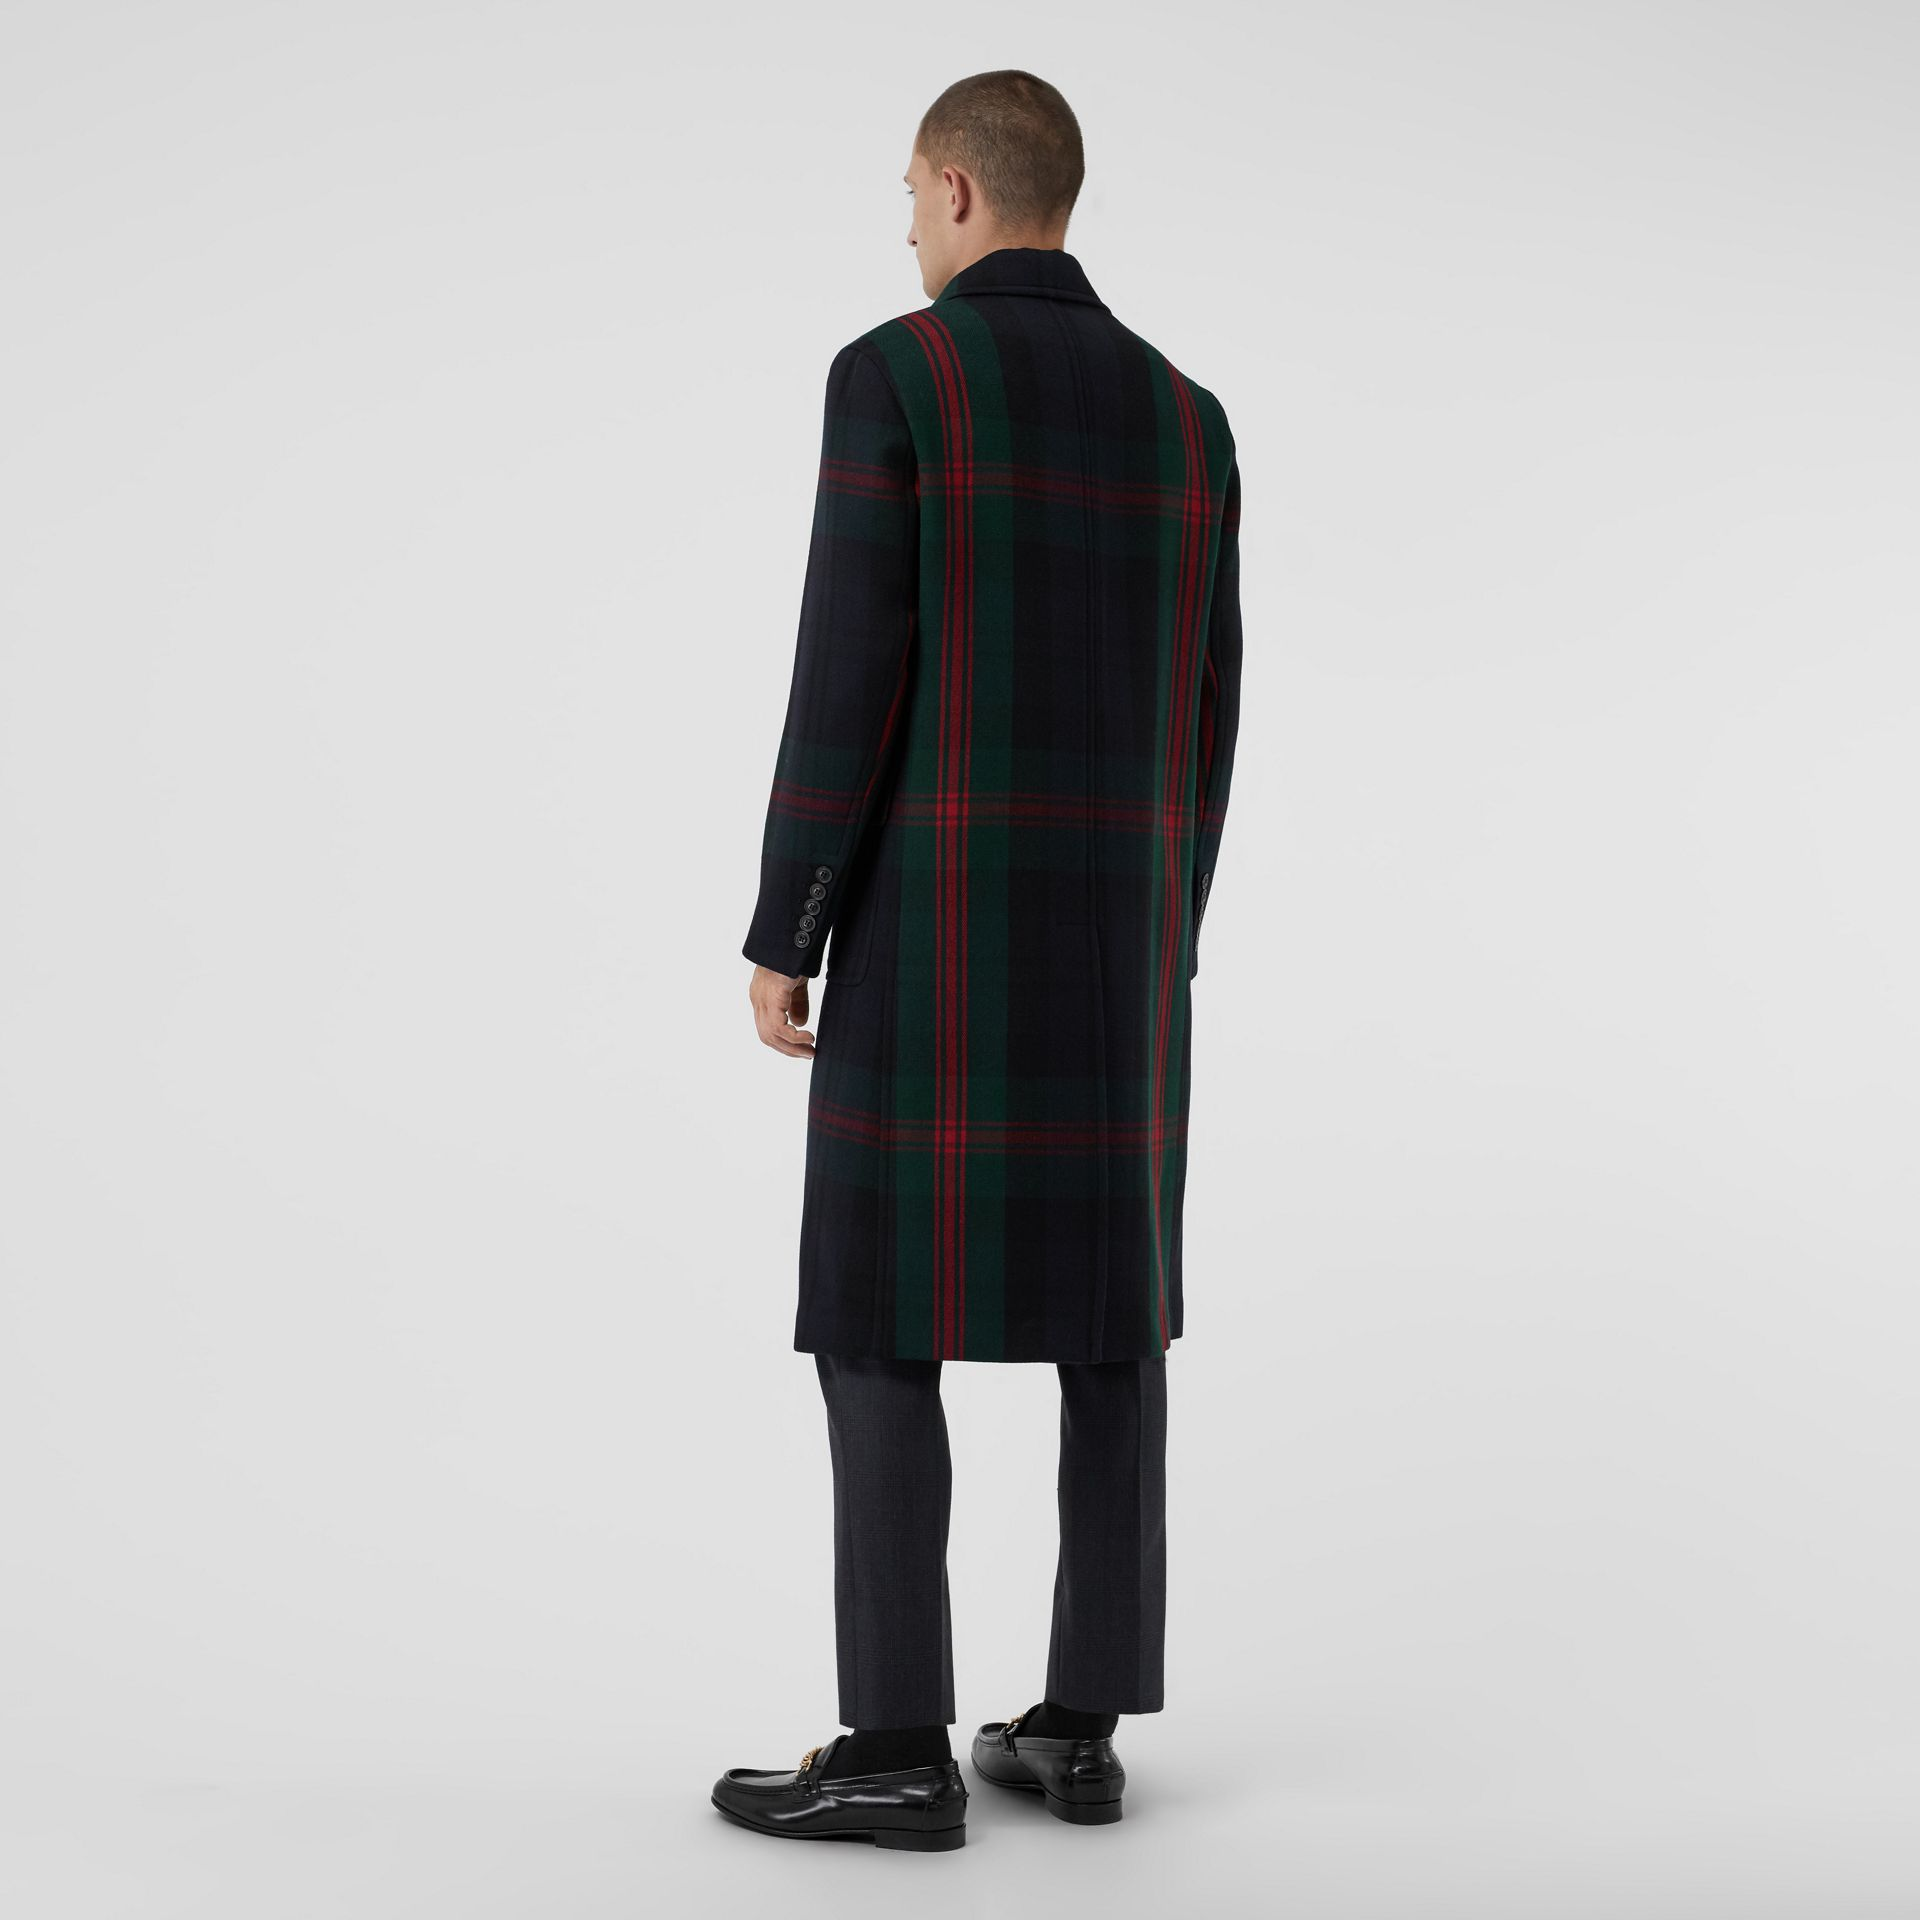 Tartan Wool Mohair Blend Tailored Coat in Navy Check - Men | Burberry Singapore - gallery image 2